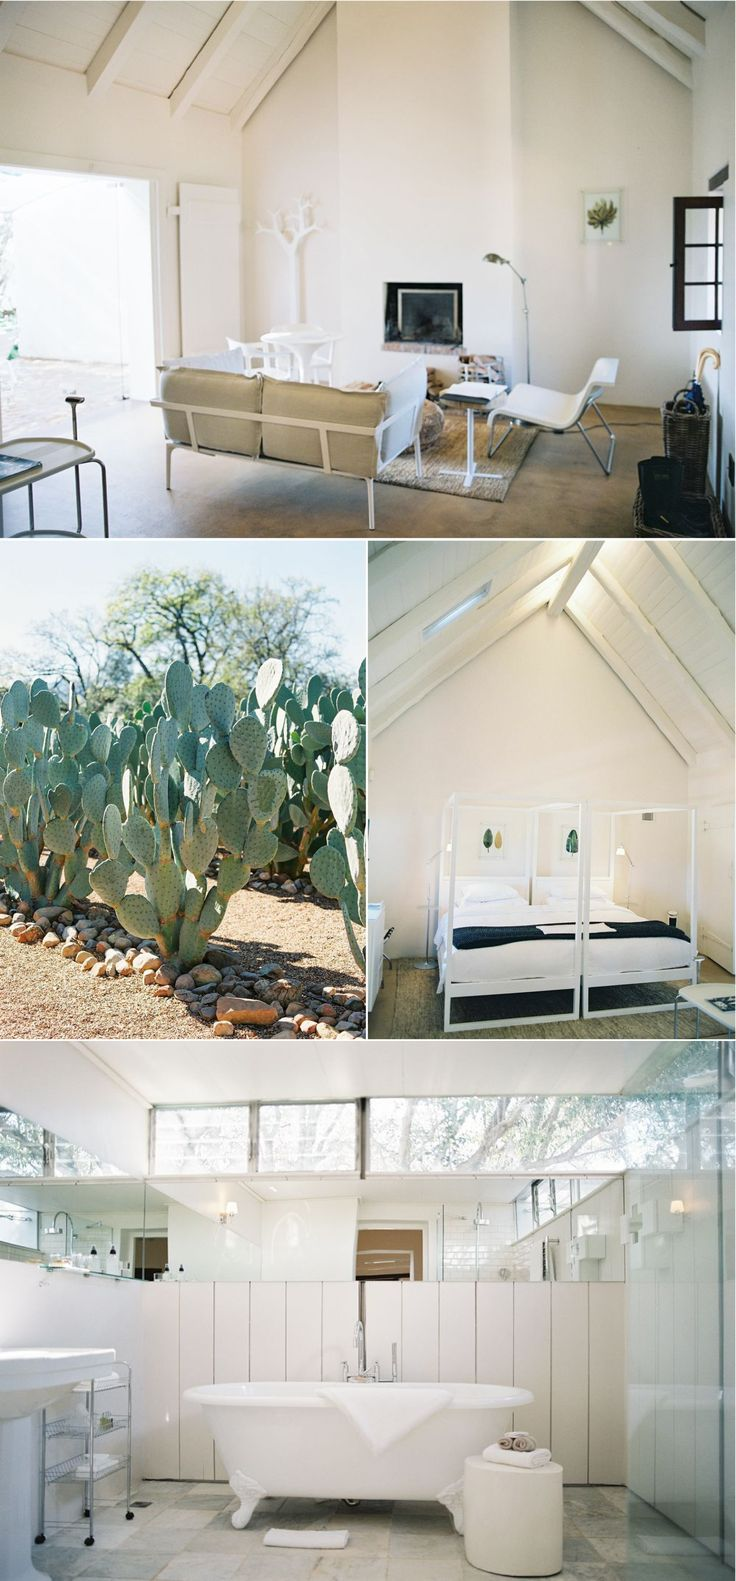 You and your guests will slumber in white modern airy spaces accented by Cape Dutch Architecture on this vineyard farm. Photo: Vicki Grafton http://www.venuereport.com/blog/a-south-african-farm-fresh-garden-getaway/